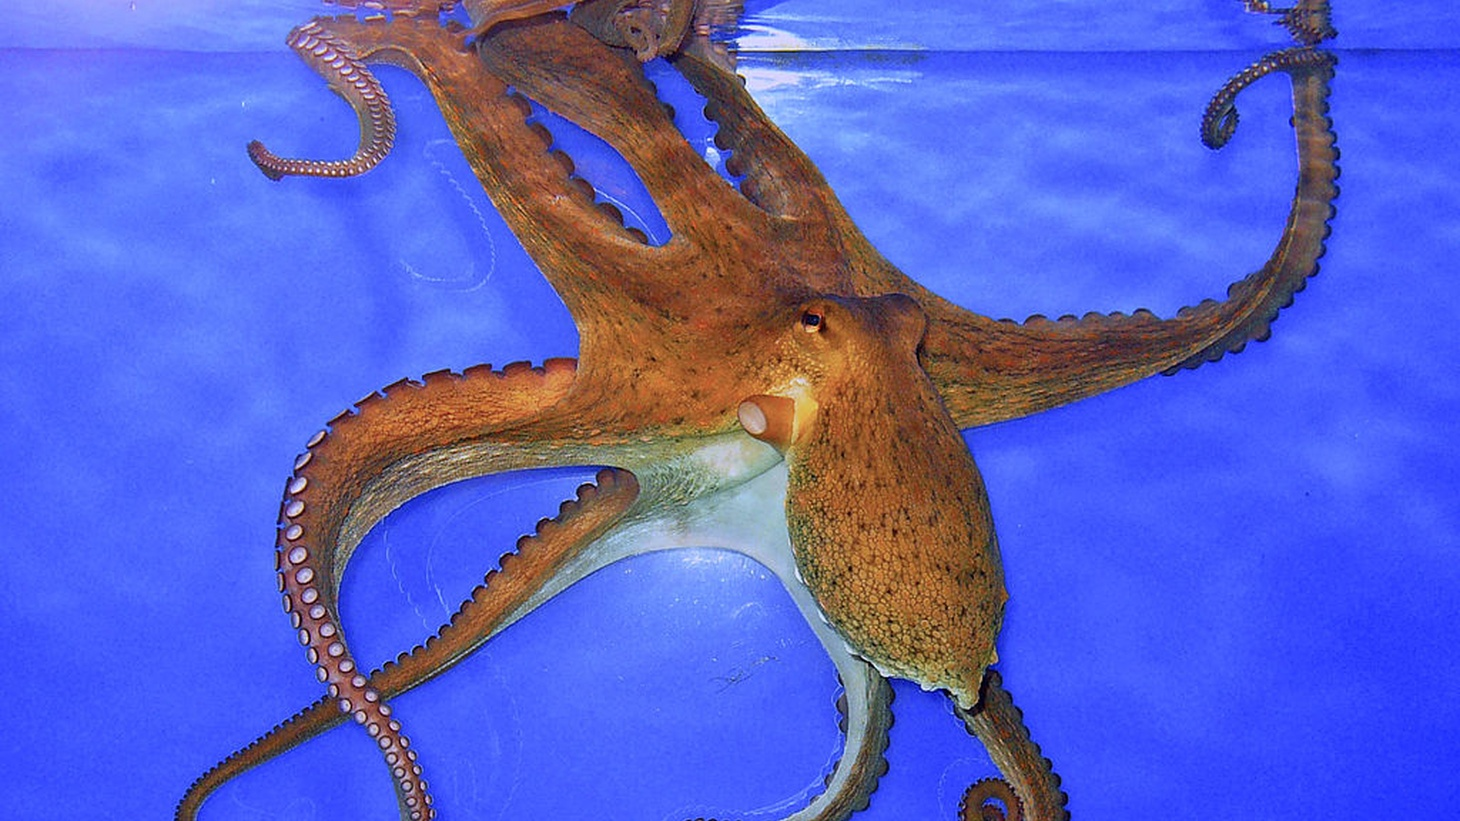 Octopus vulgaris at the State Museum for Natural History, Karlsruhe, Germany.